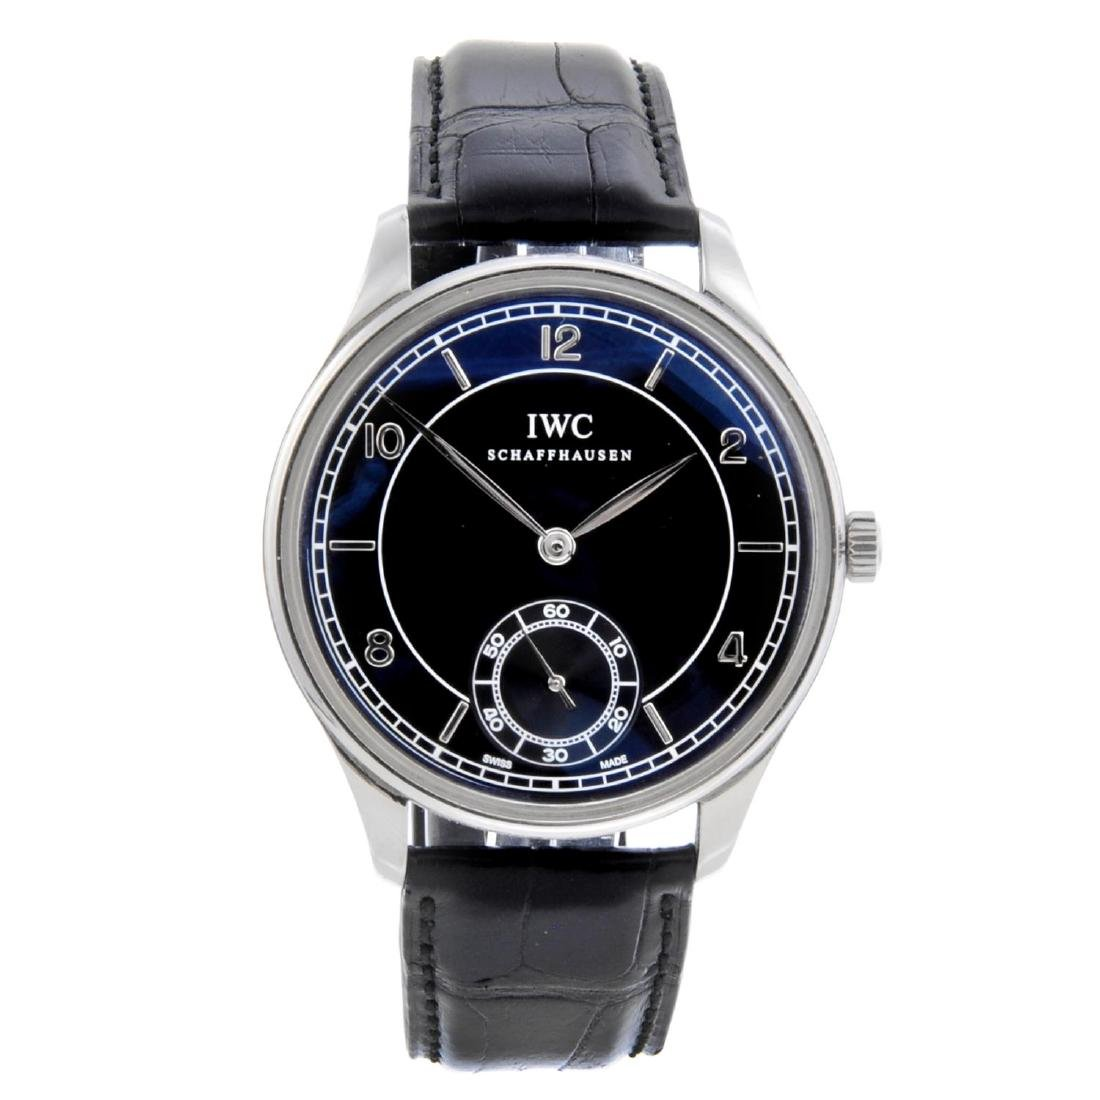 IWC - a gentleman's Portuguese wrist watch. Stainless